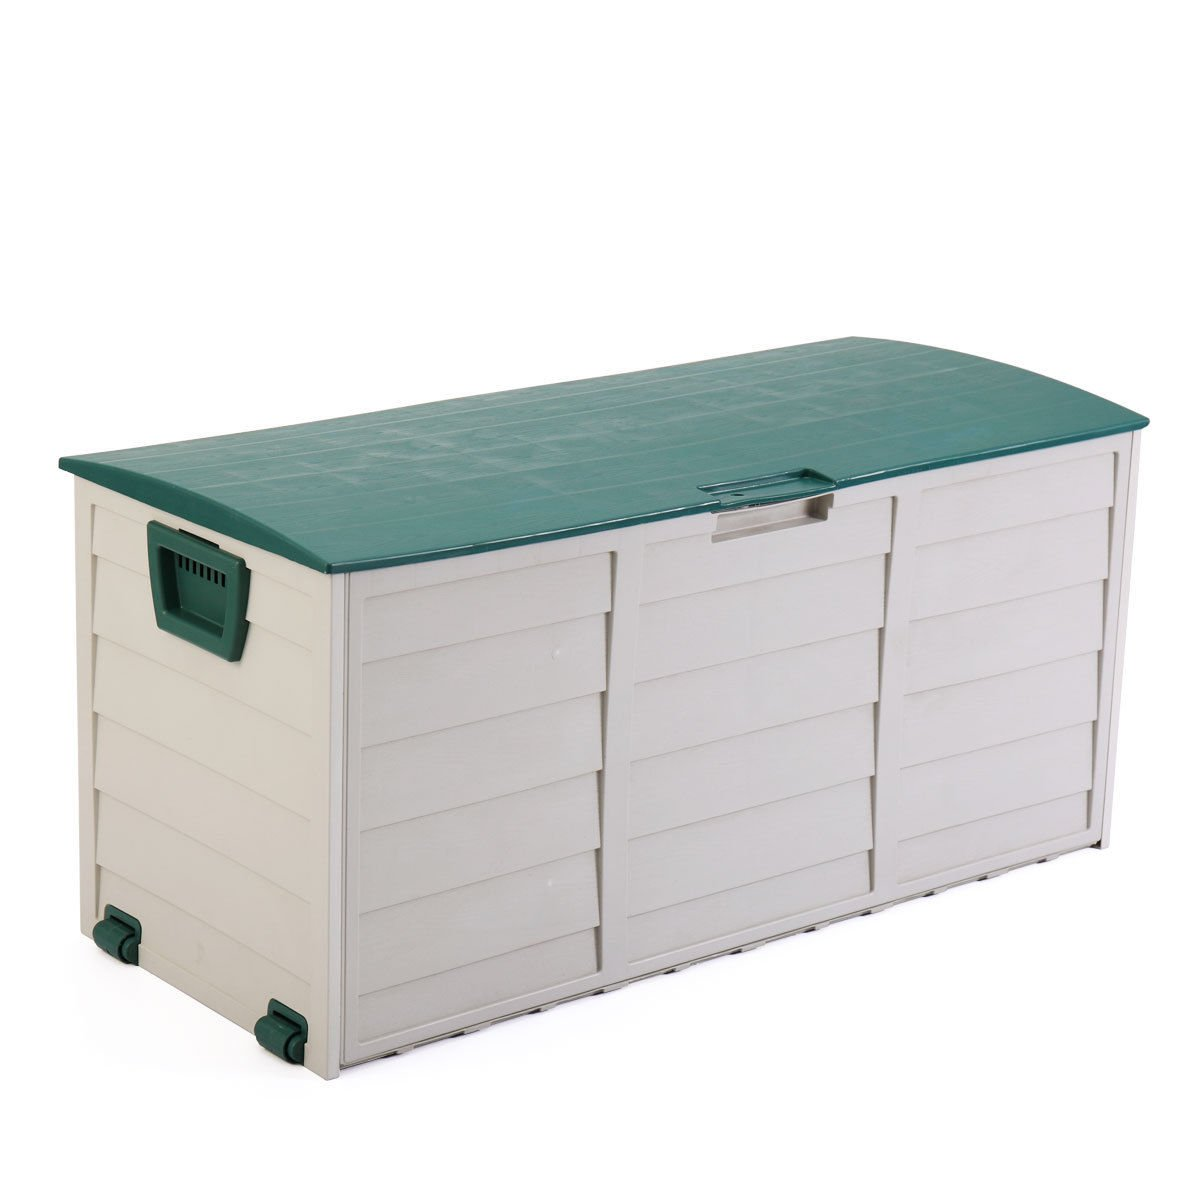 Get Quotations · JAXPETY Garden Storage Tool Box Outdoor Shed Patio Deck  Furniture Yard Container Utility